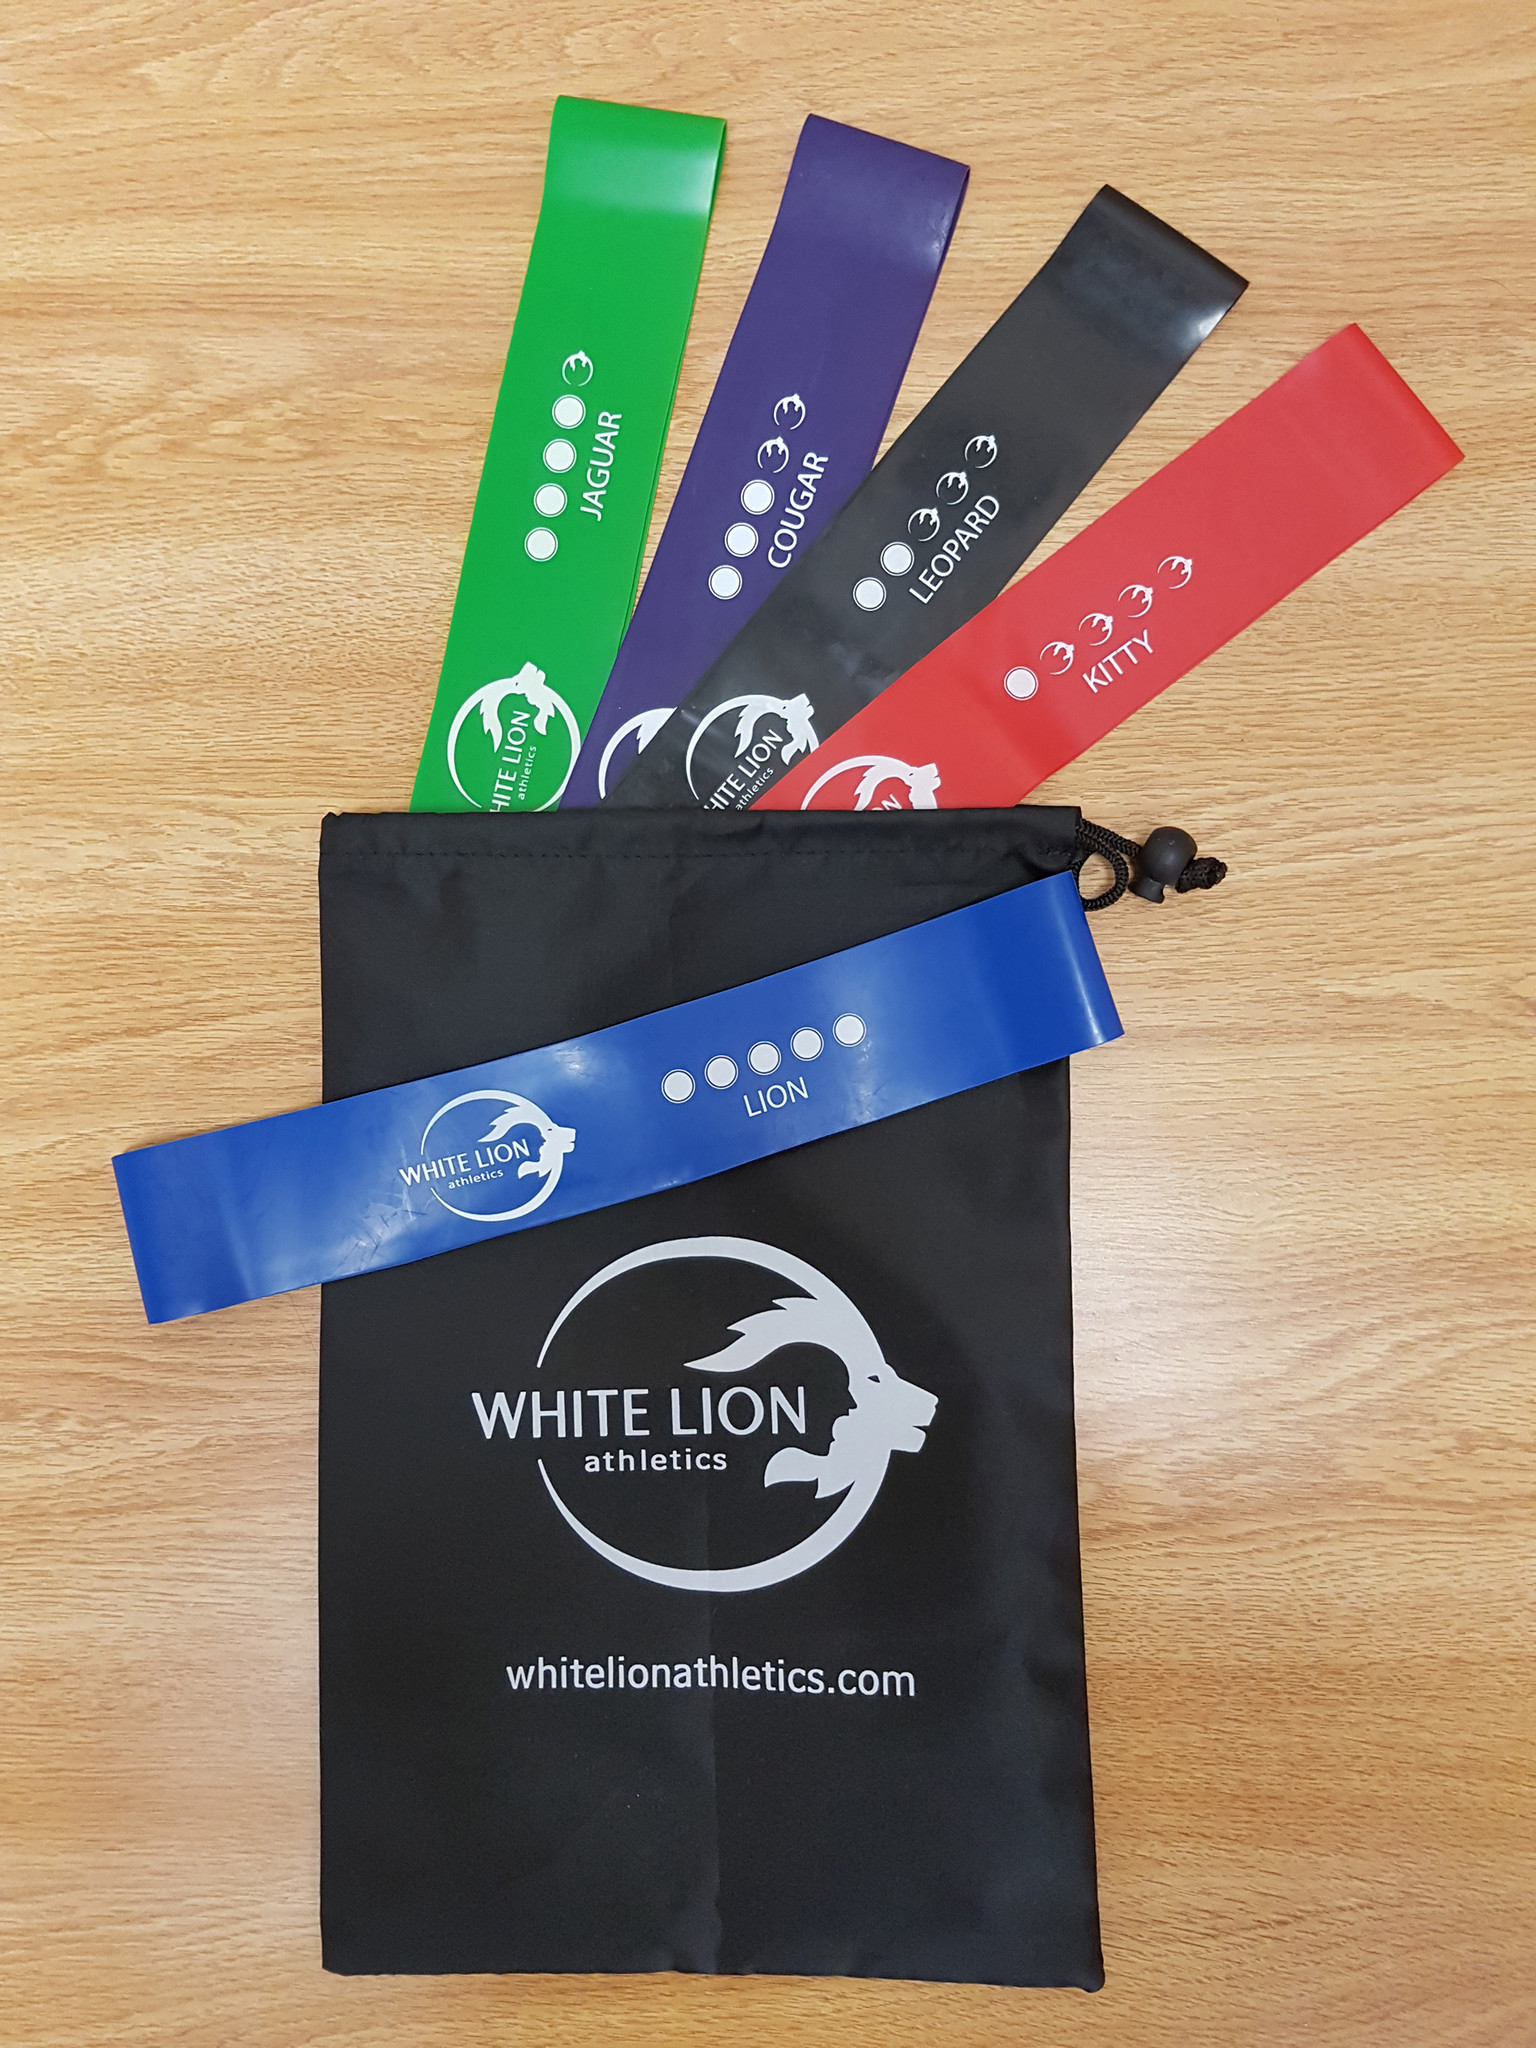 White Lion Mini Band 5 Pack - Every training program can benefit from the versatility of Mini Bands. This 5 Pack comes with five progressive resistances, perfect for developing your strength, endurance, stability and power. Ranging from 6 - 35 pounds of resistance.